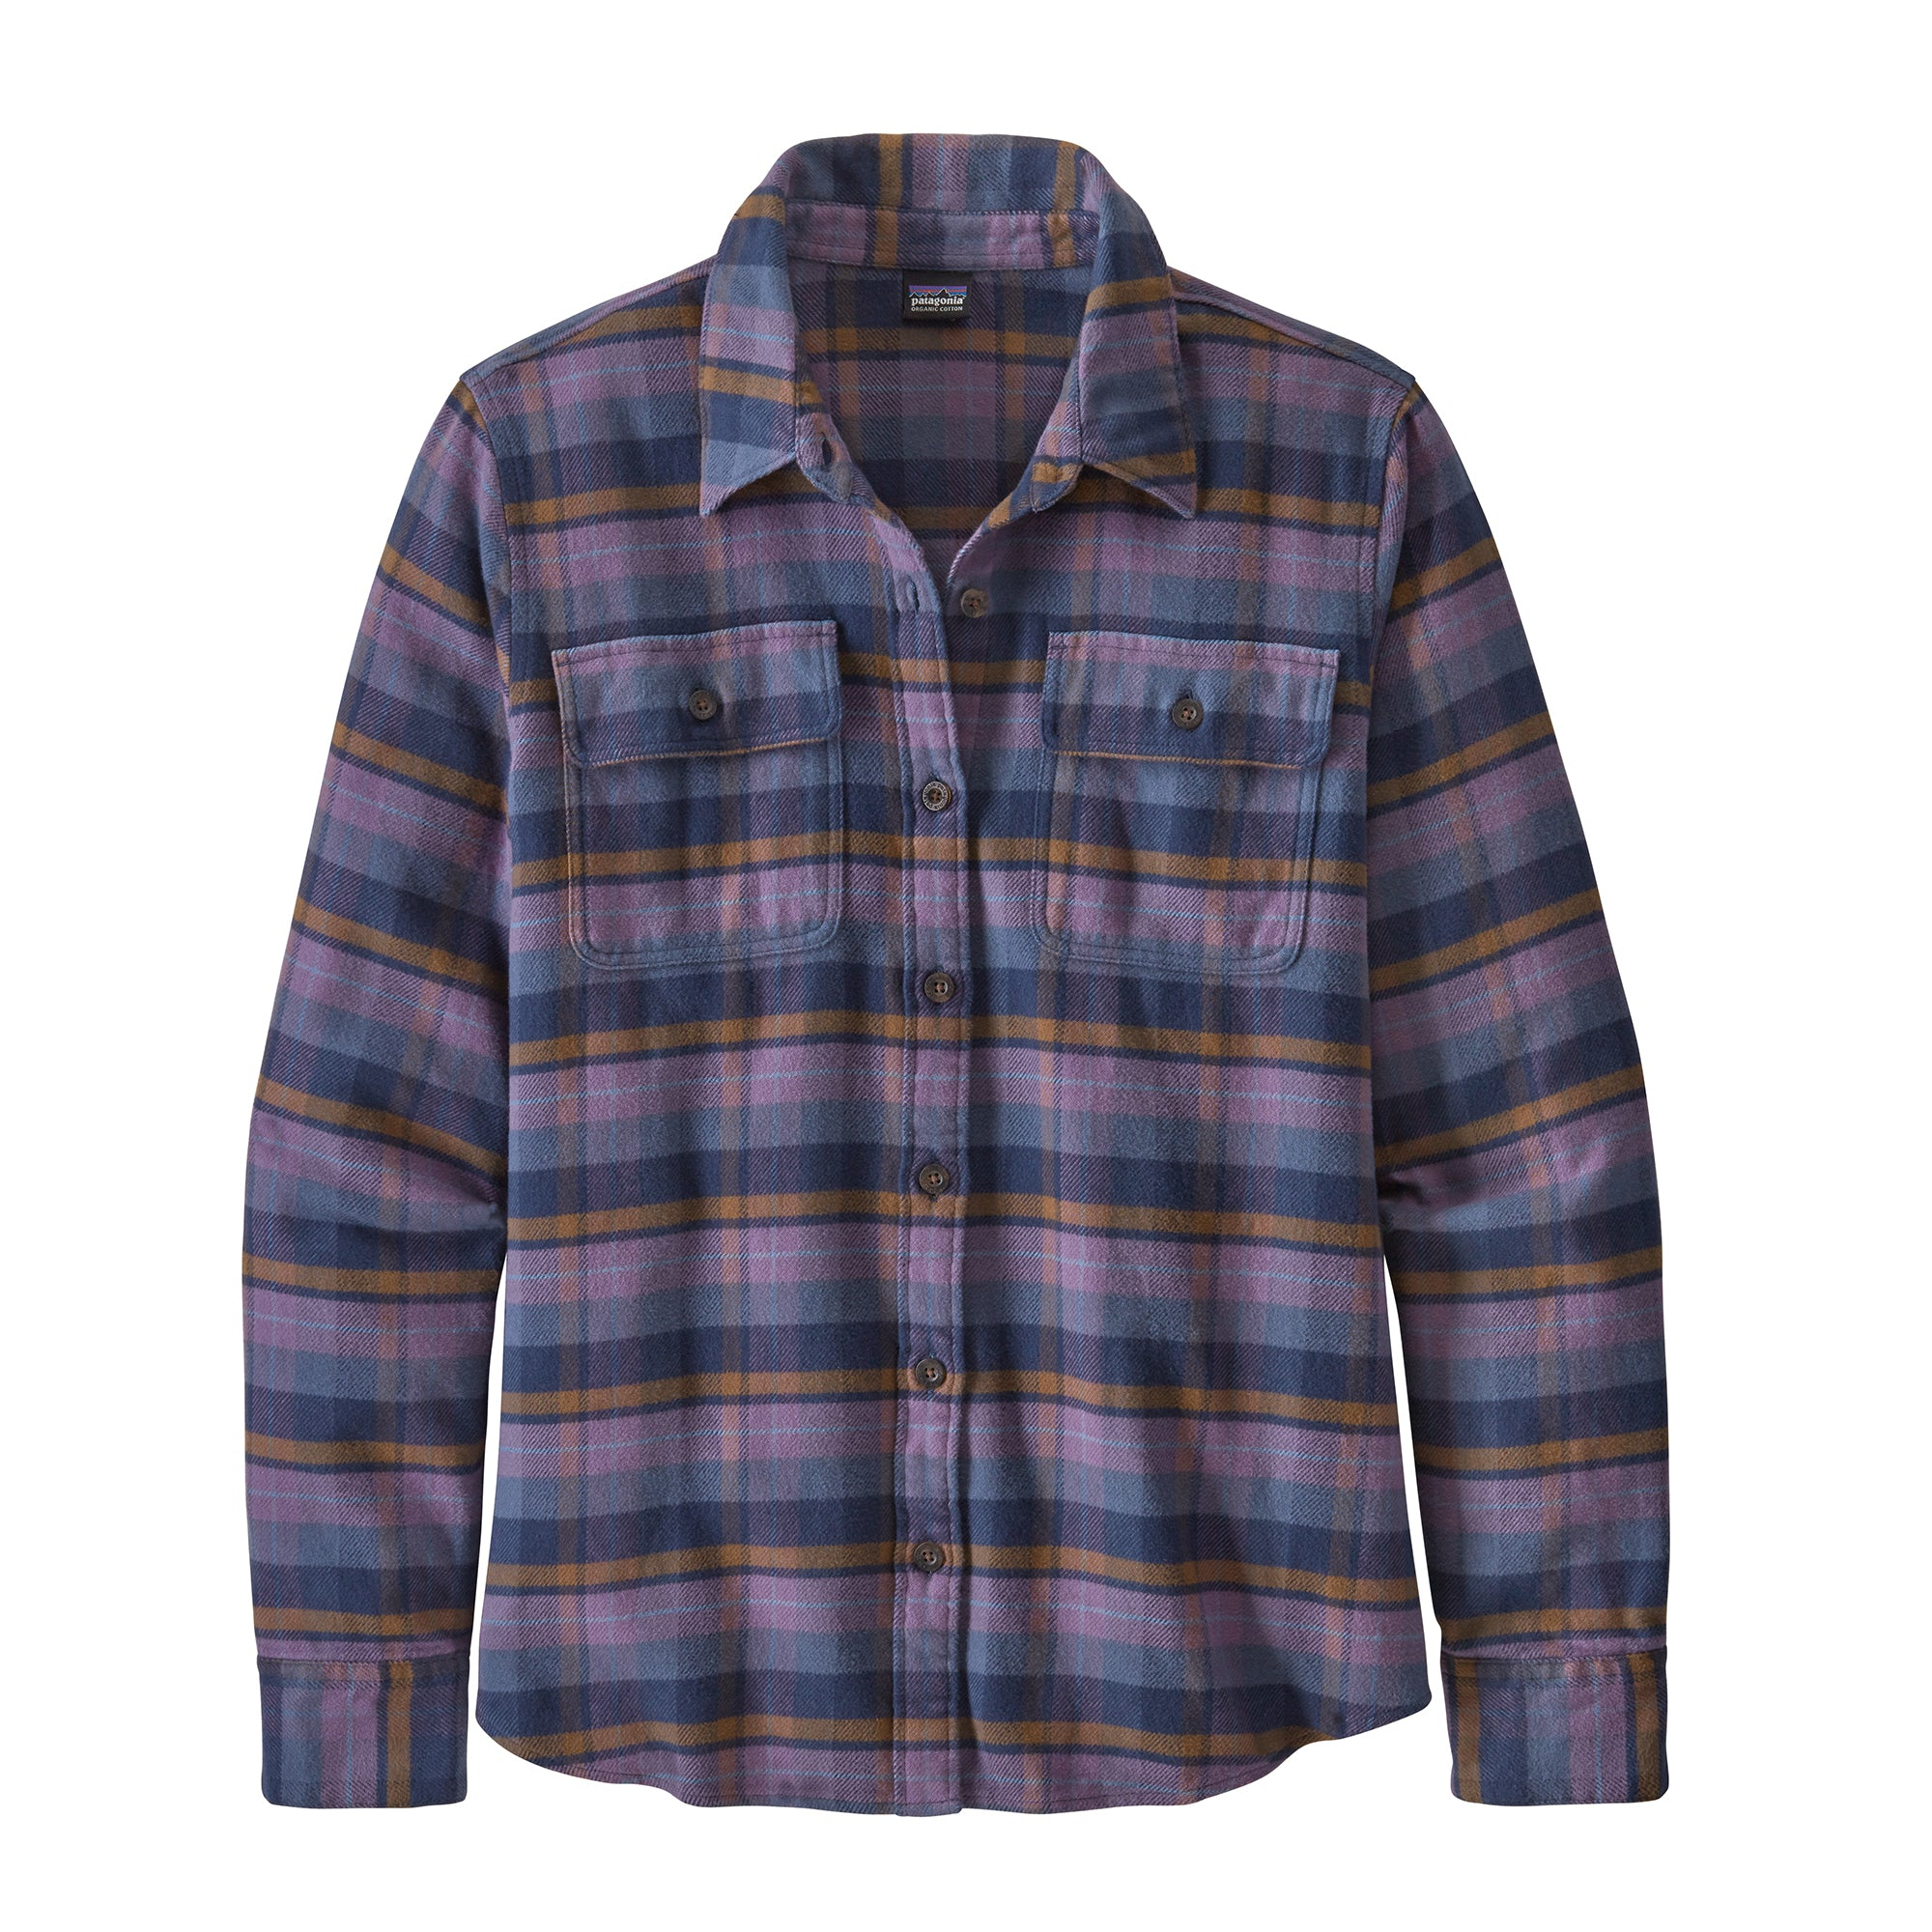 Patagonia L/S Fjord Flannel Shirt for Ladies in Pistil: Hyssop Purple